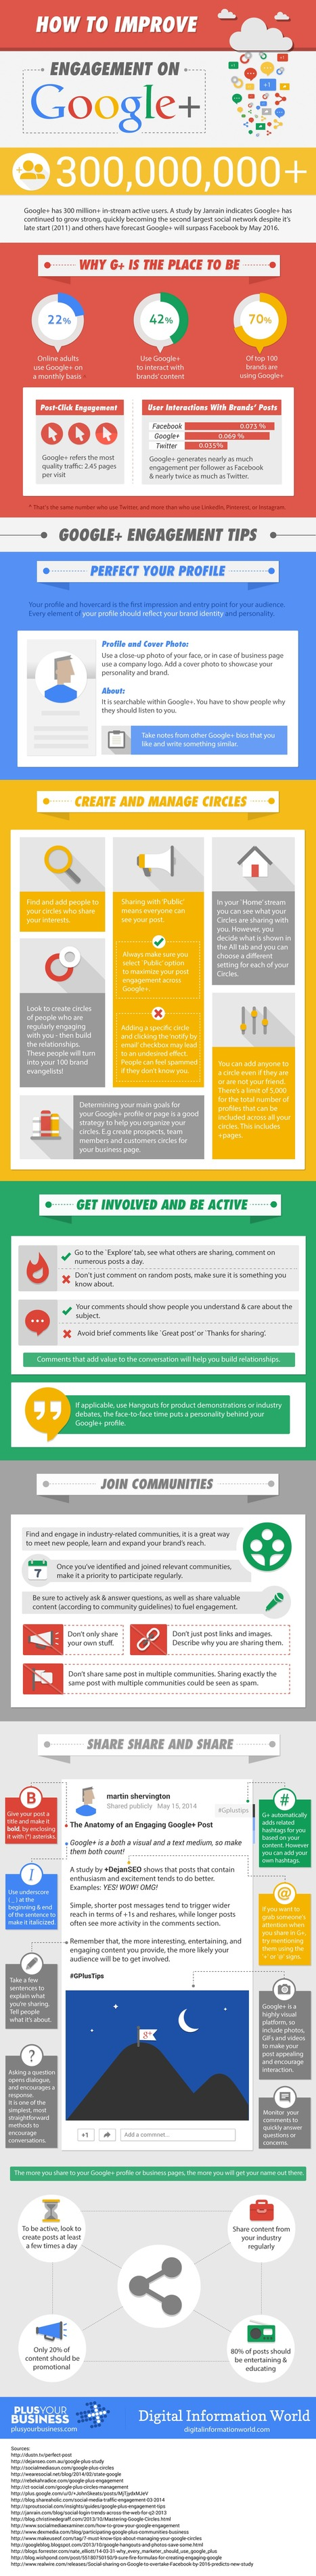 A Complete Guide to Improving Engagement on GooglePlus [INFOGRAPHIC] | MarketingHits | Scoop.it